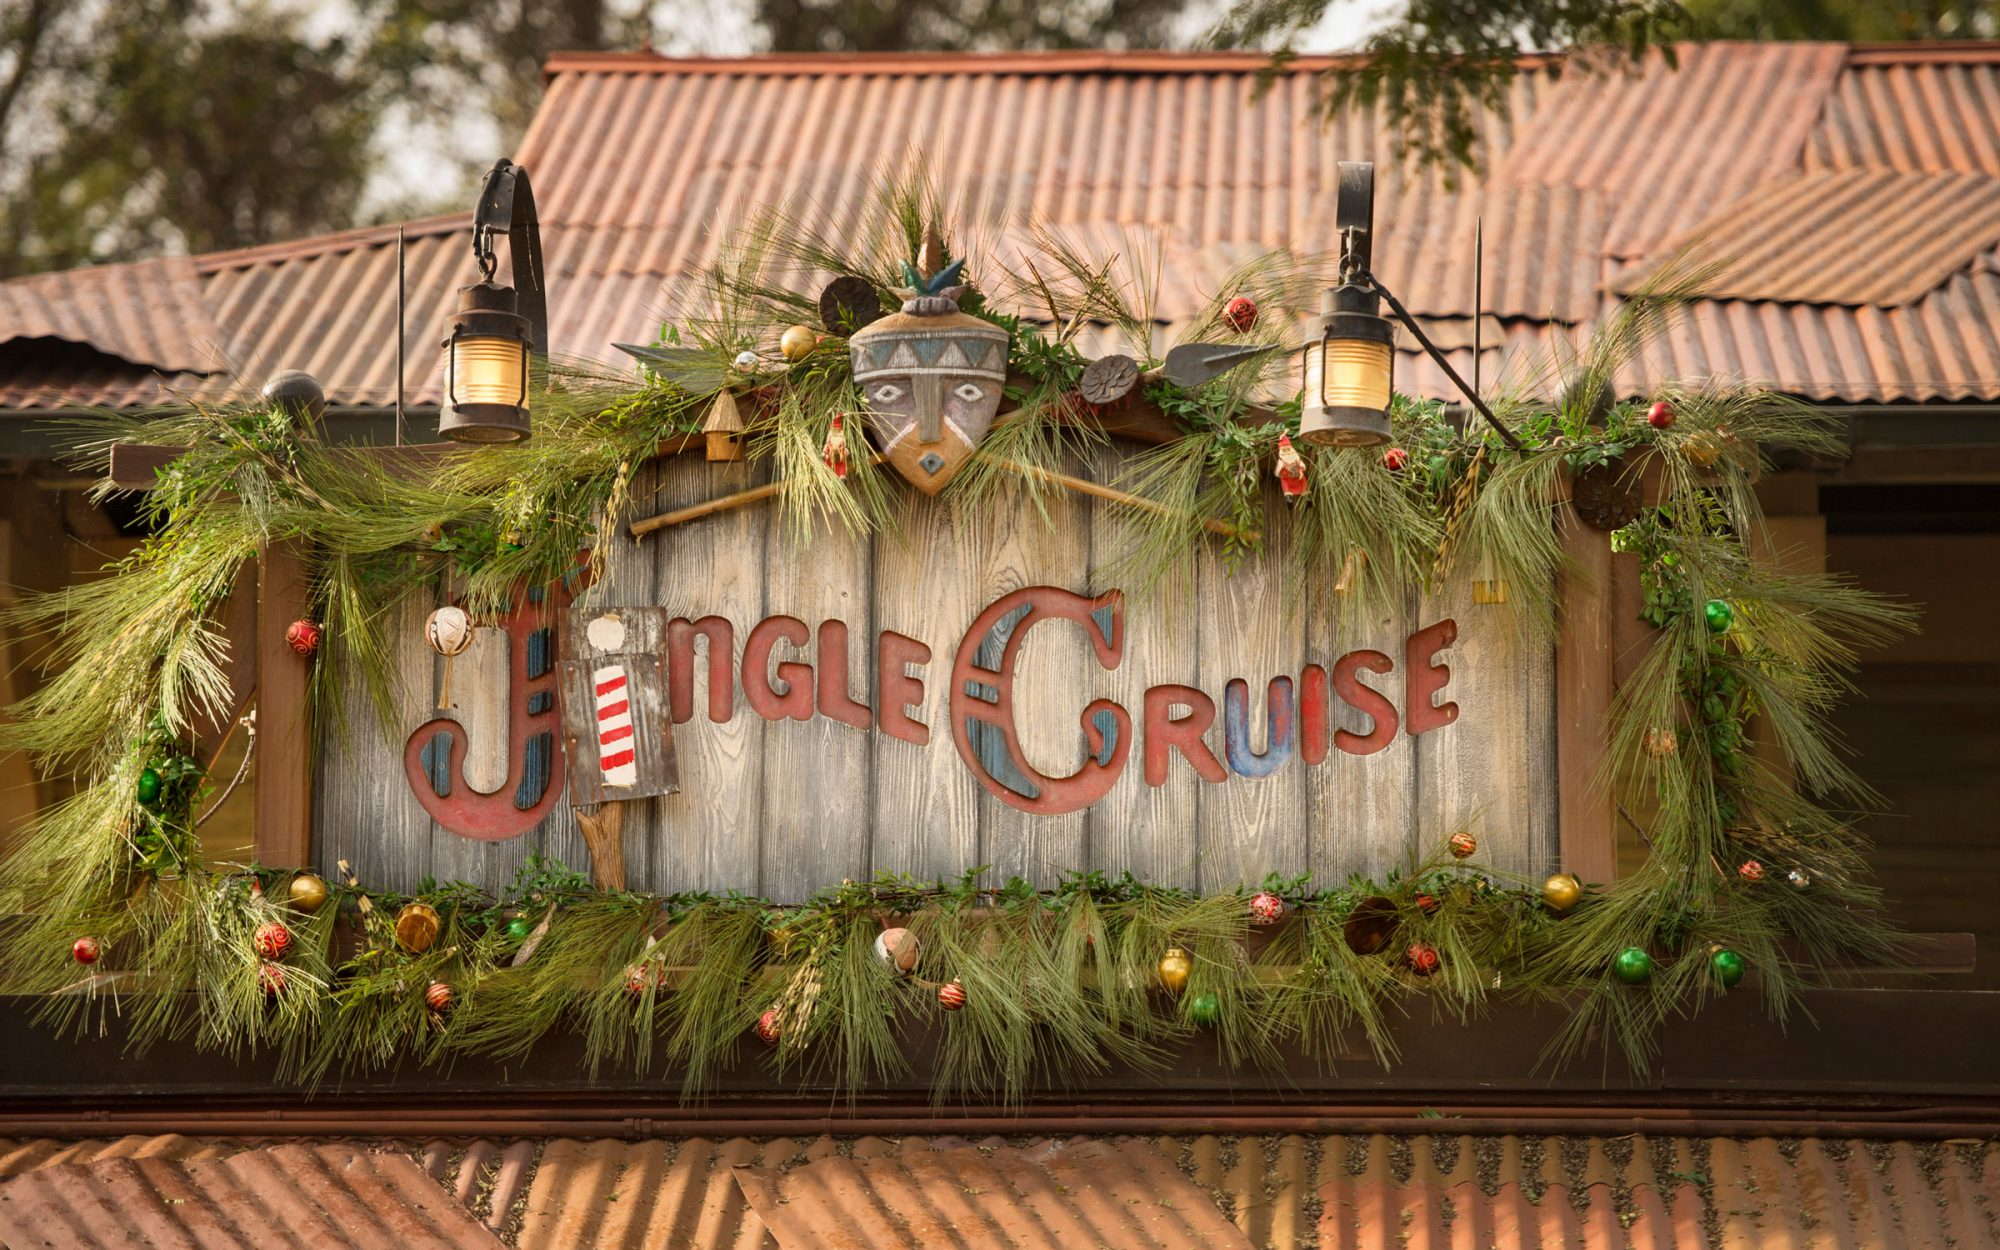 Disney Christmas Travel Tips: Ride the Jingle Cruise at the Magic Kingdom